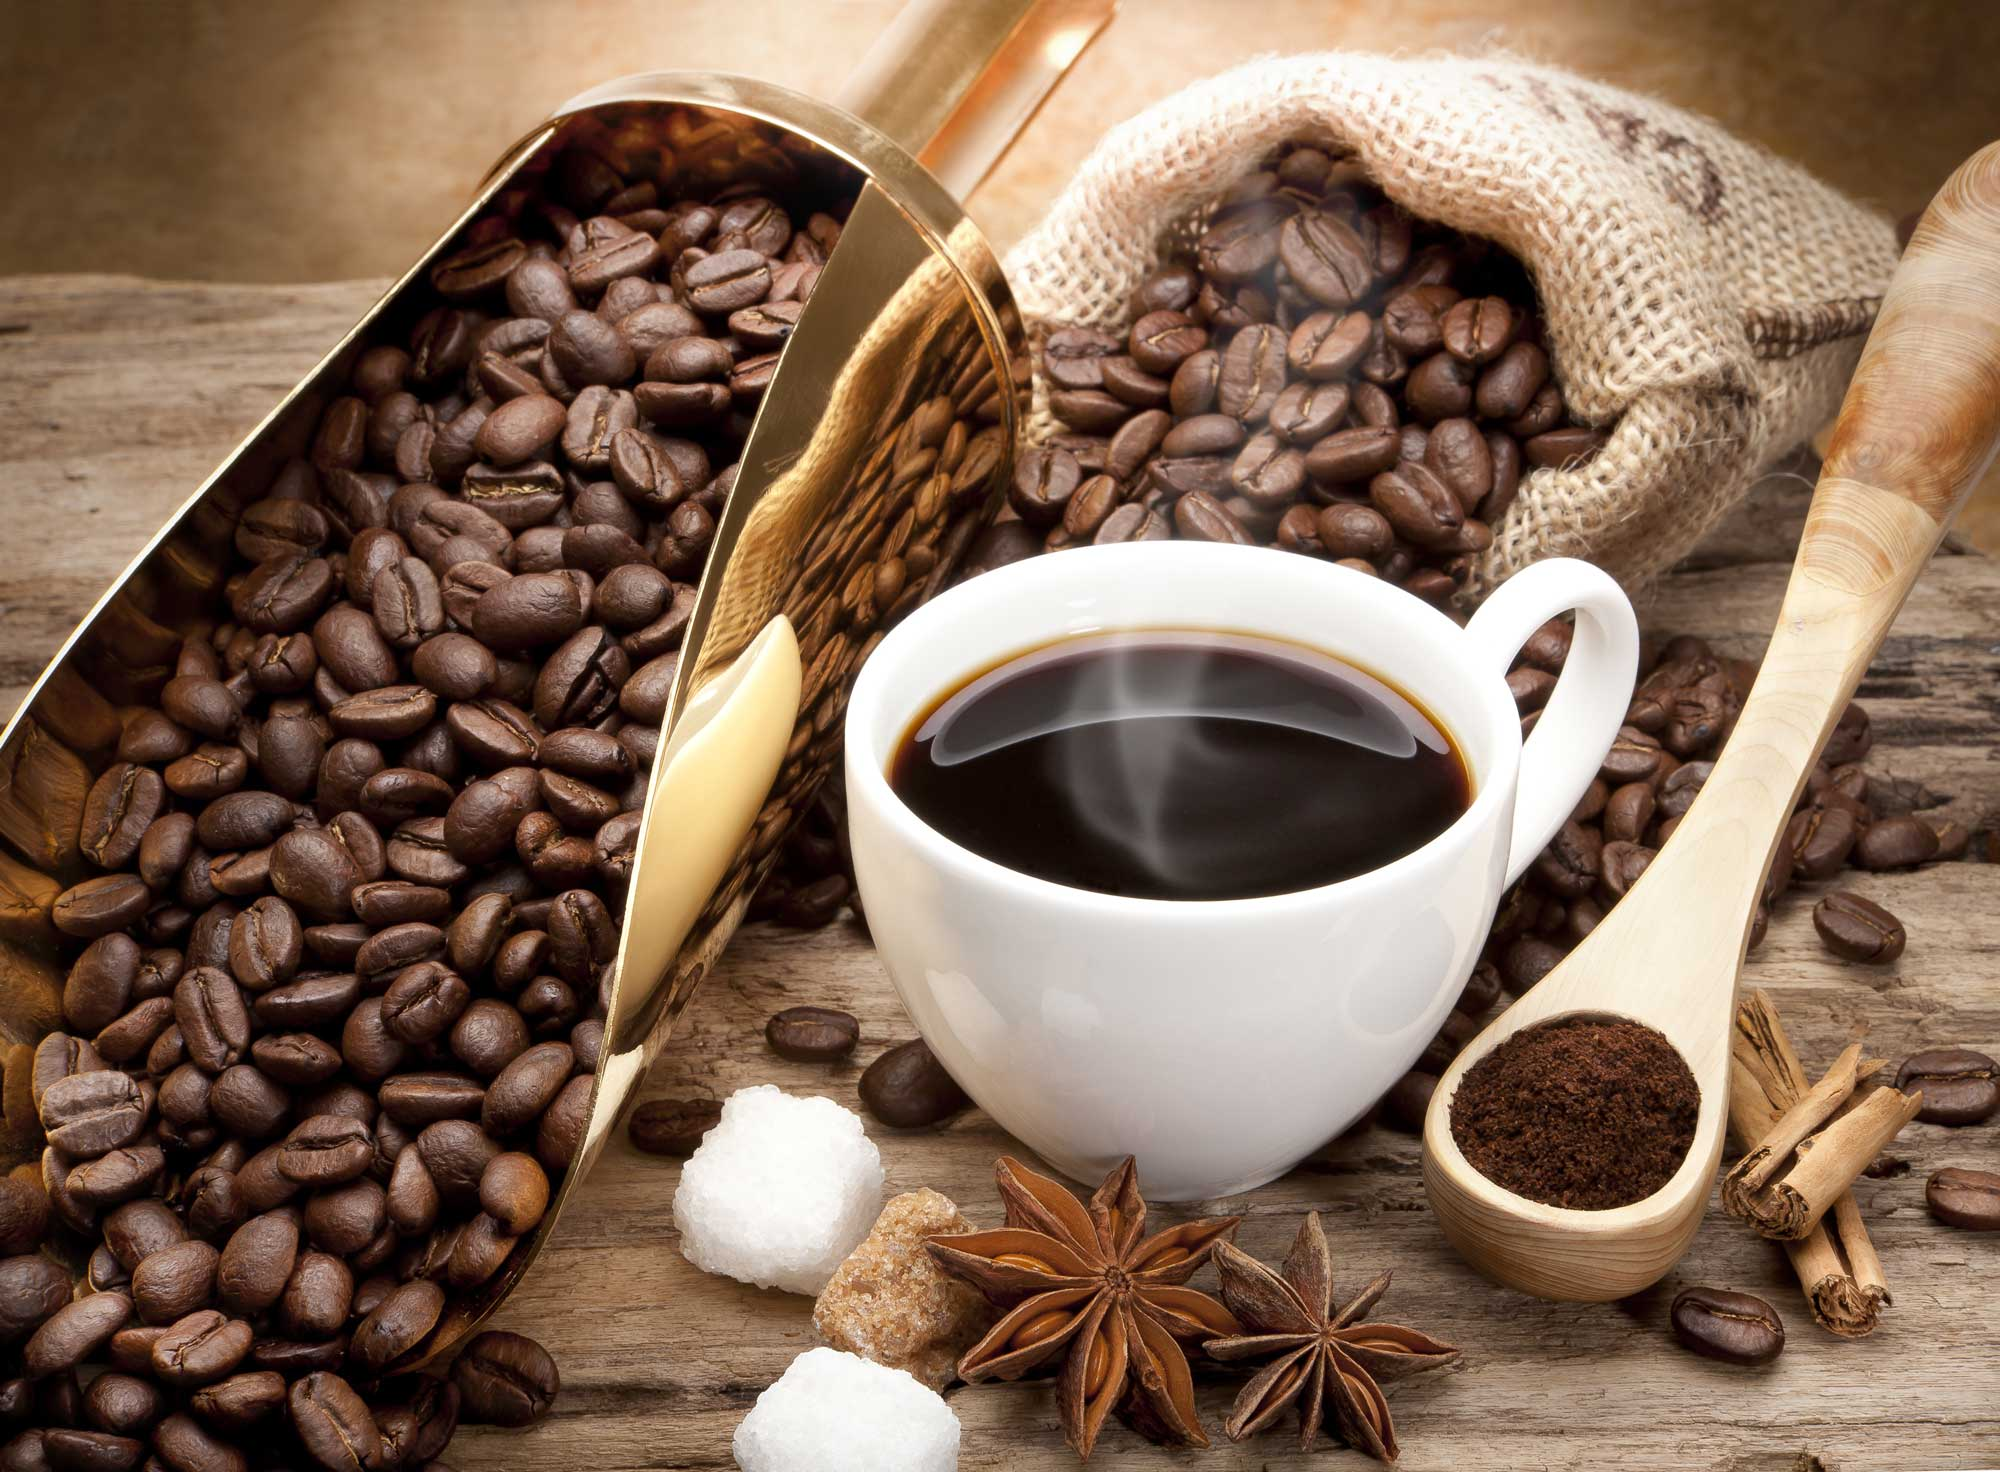 10 Easy Steps to Choose The Best Coffee Machine - Helping You to Make a Wise Choice